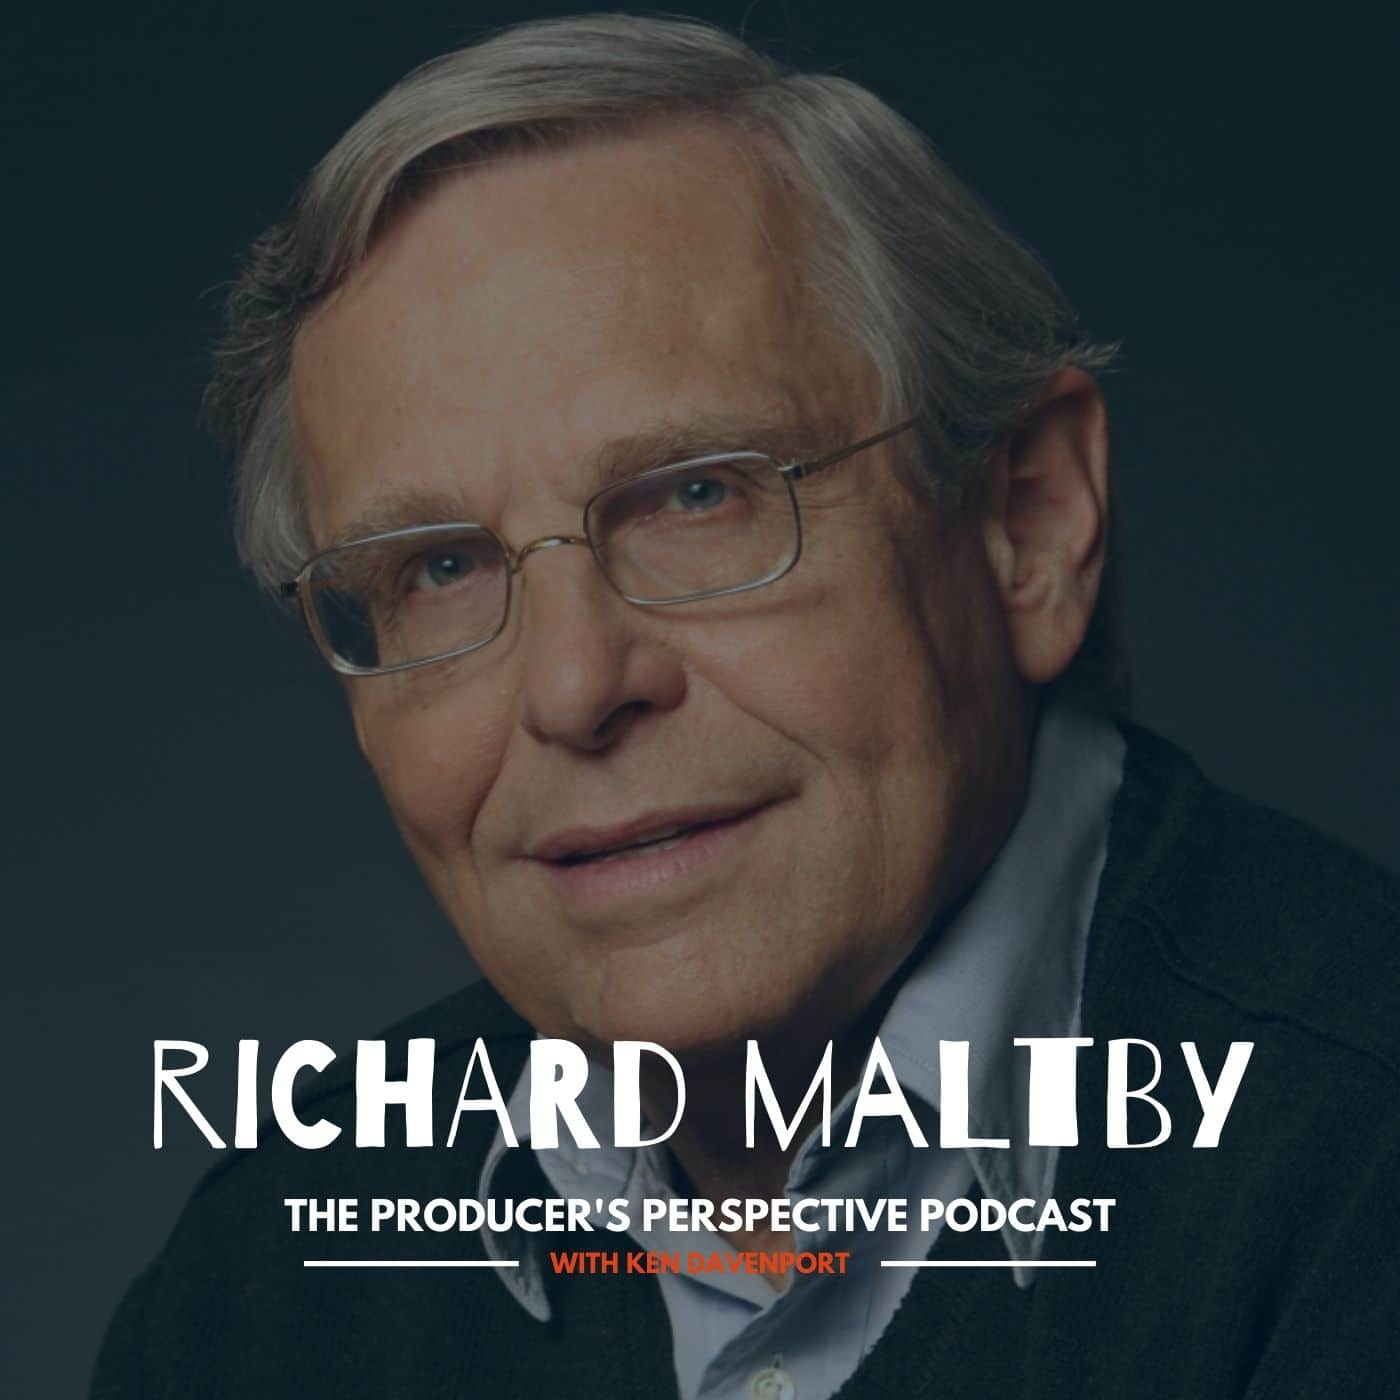 Ken Davenport's The Producer's Perspective Podcast Episode 161 - Richard Maltby